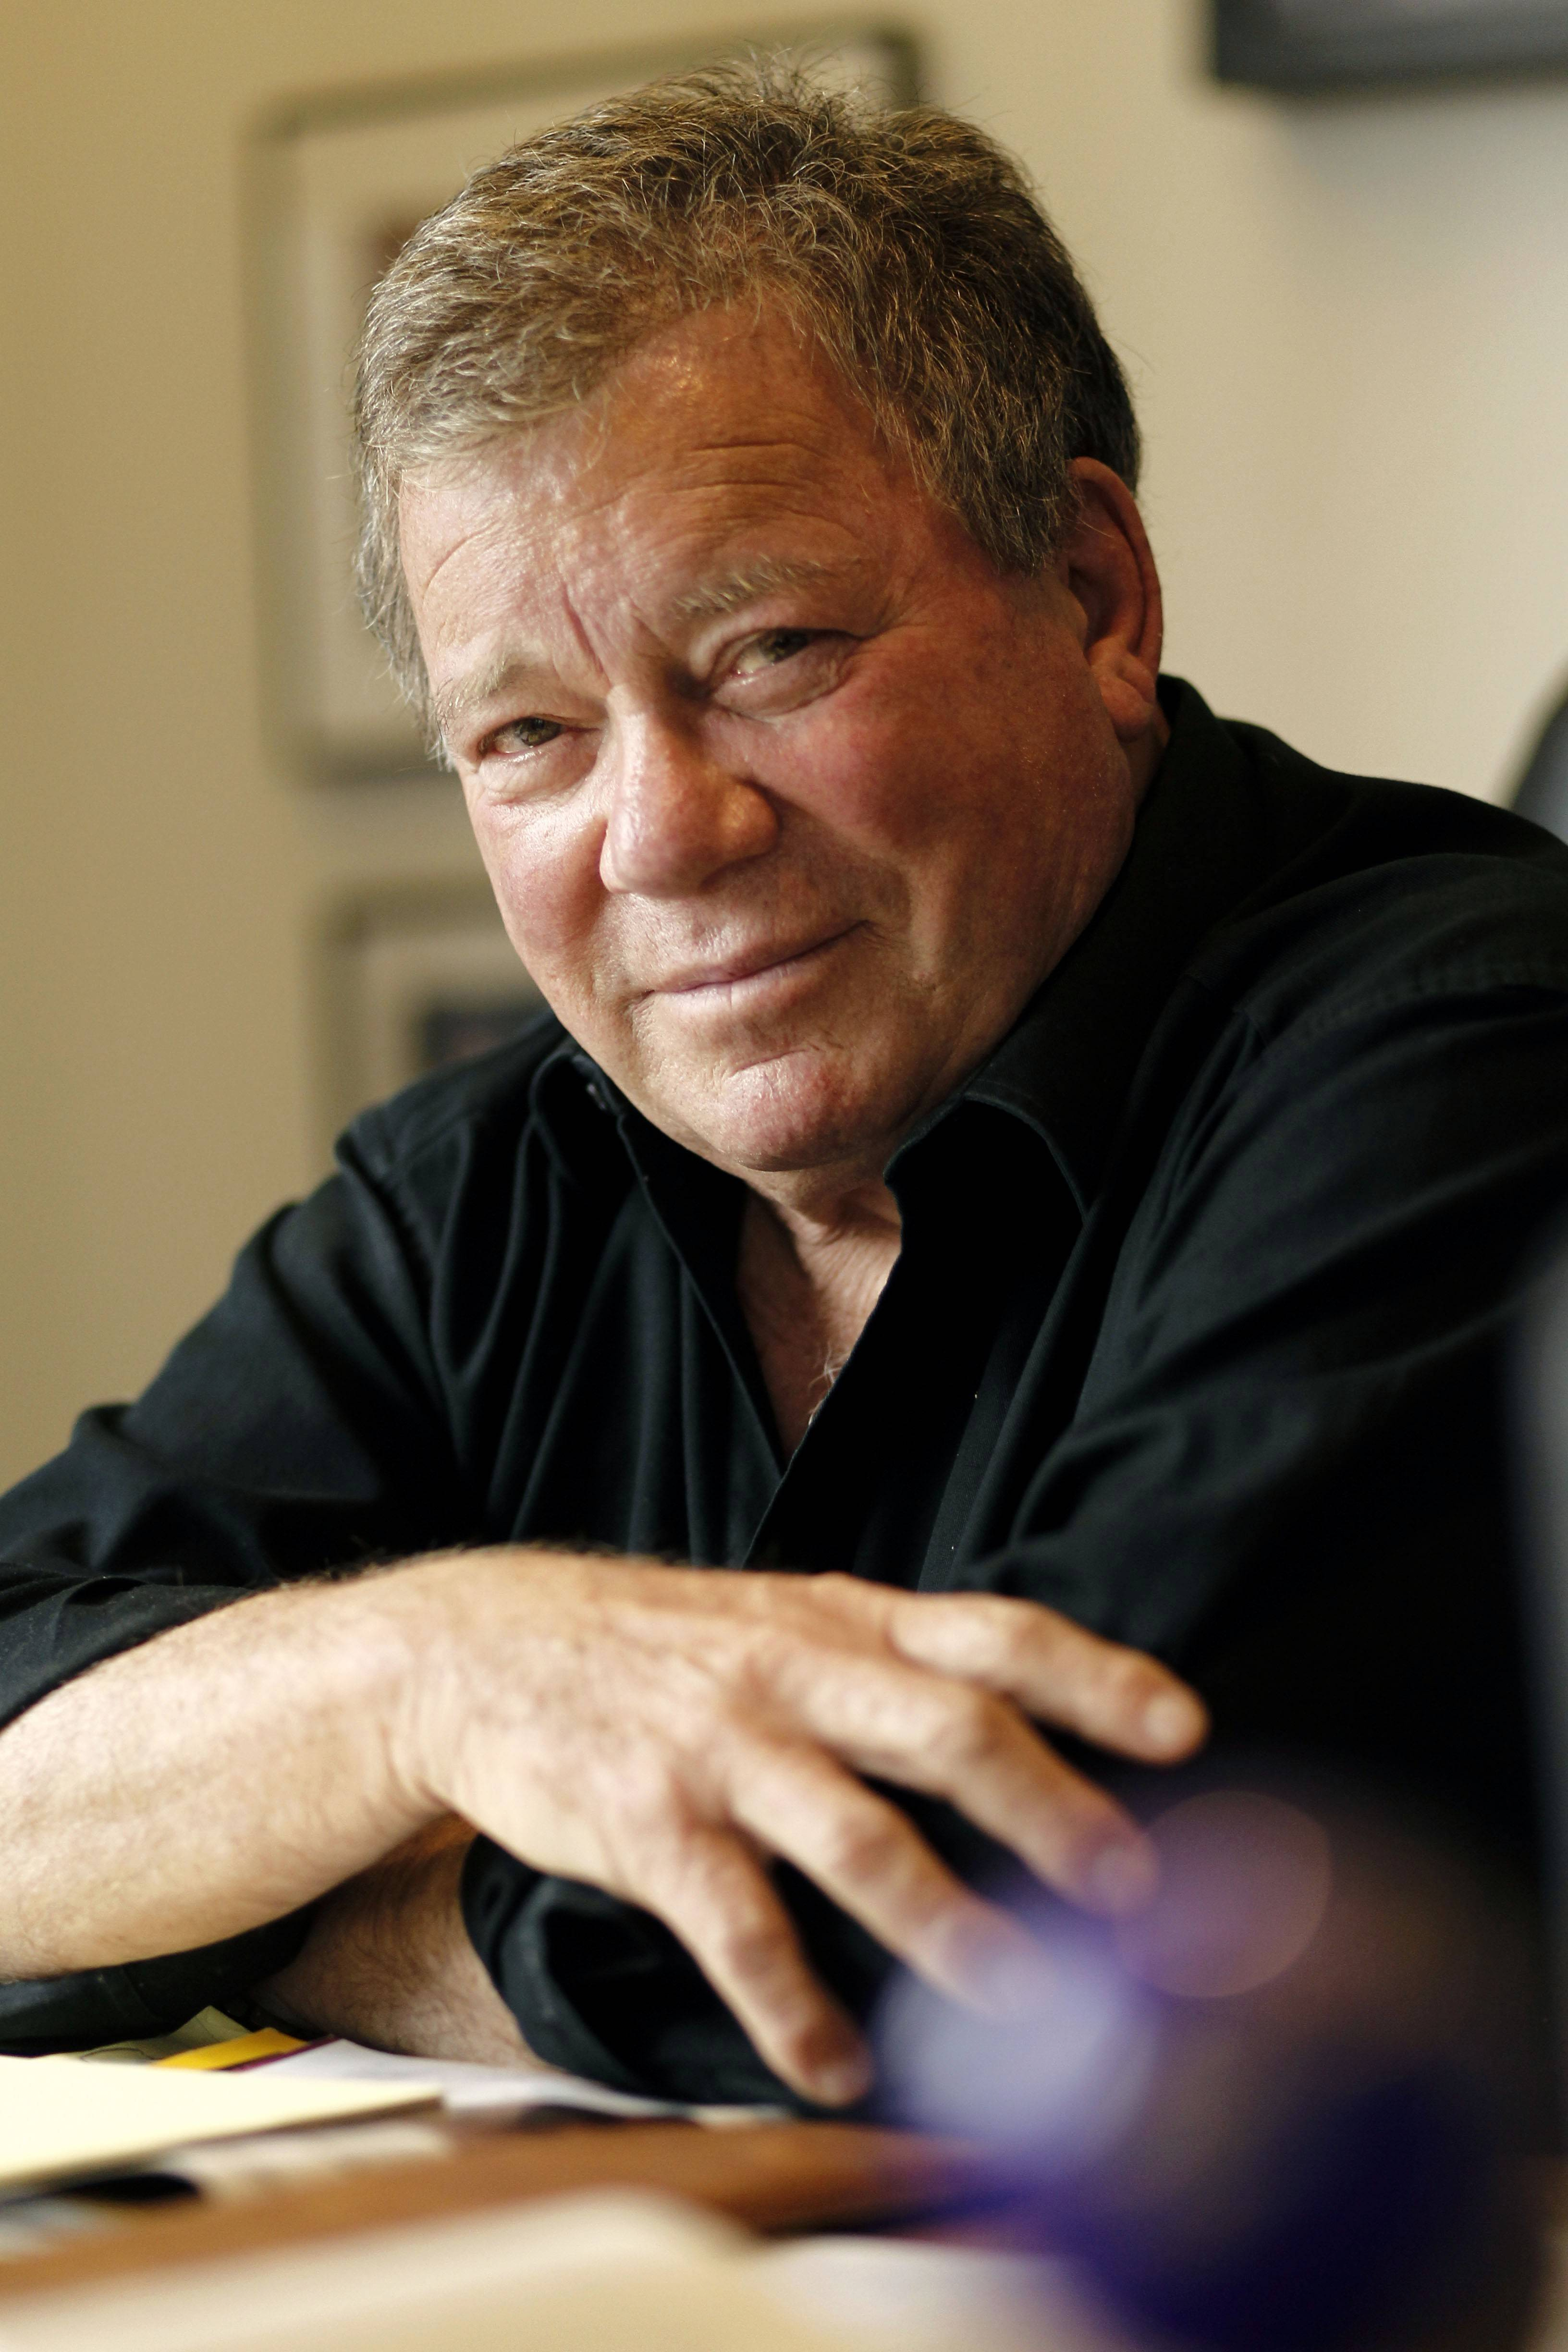 William Shatner is among the stars making appearances at Wizard World Chicago Comic Con in Rosemont this weekend.